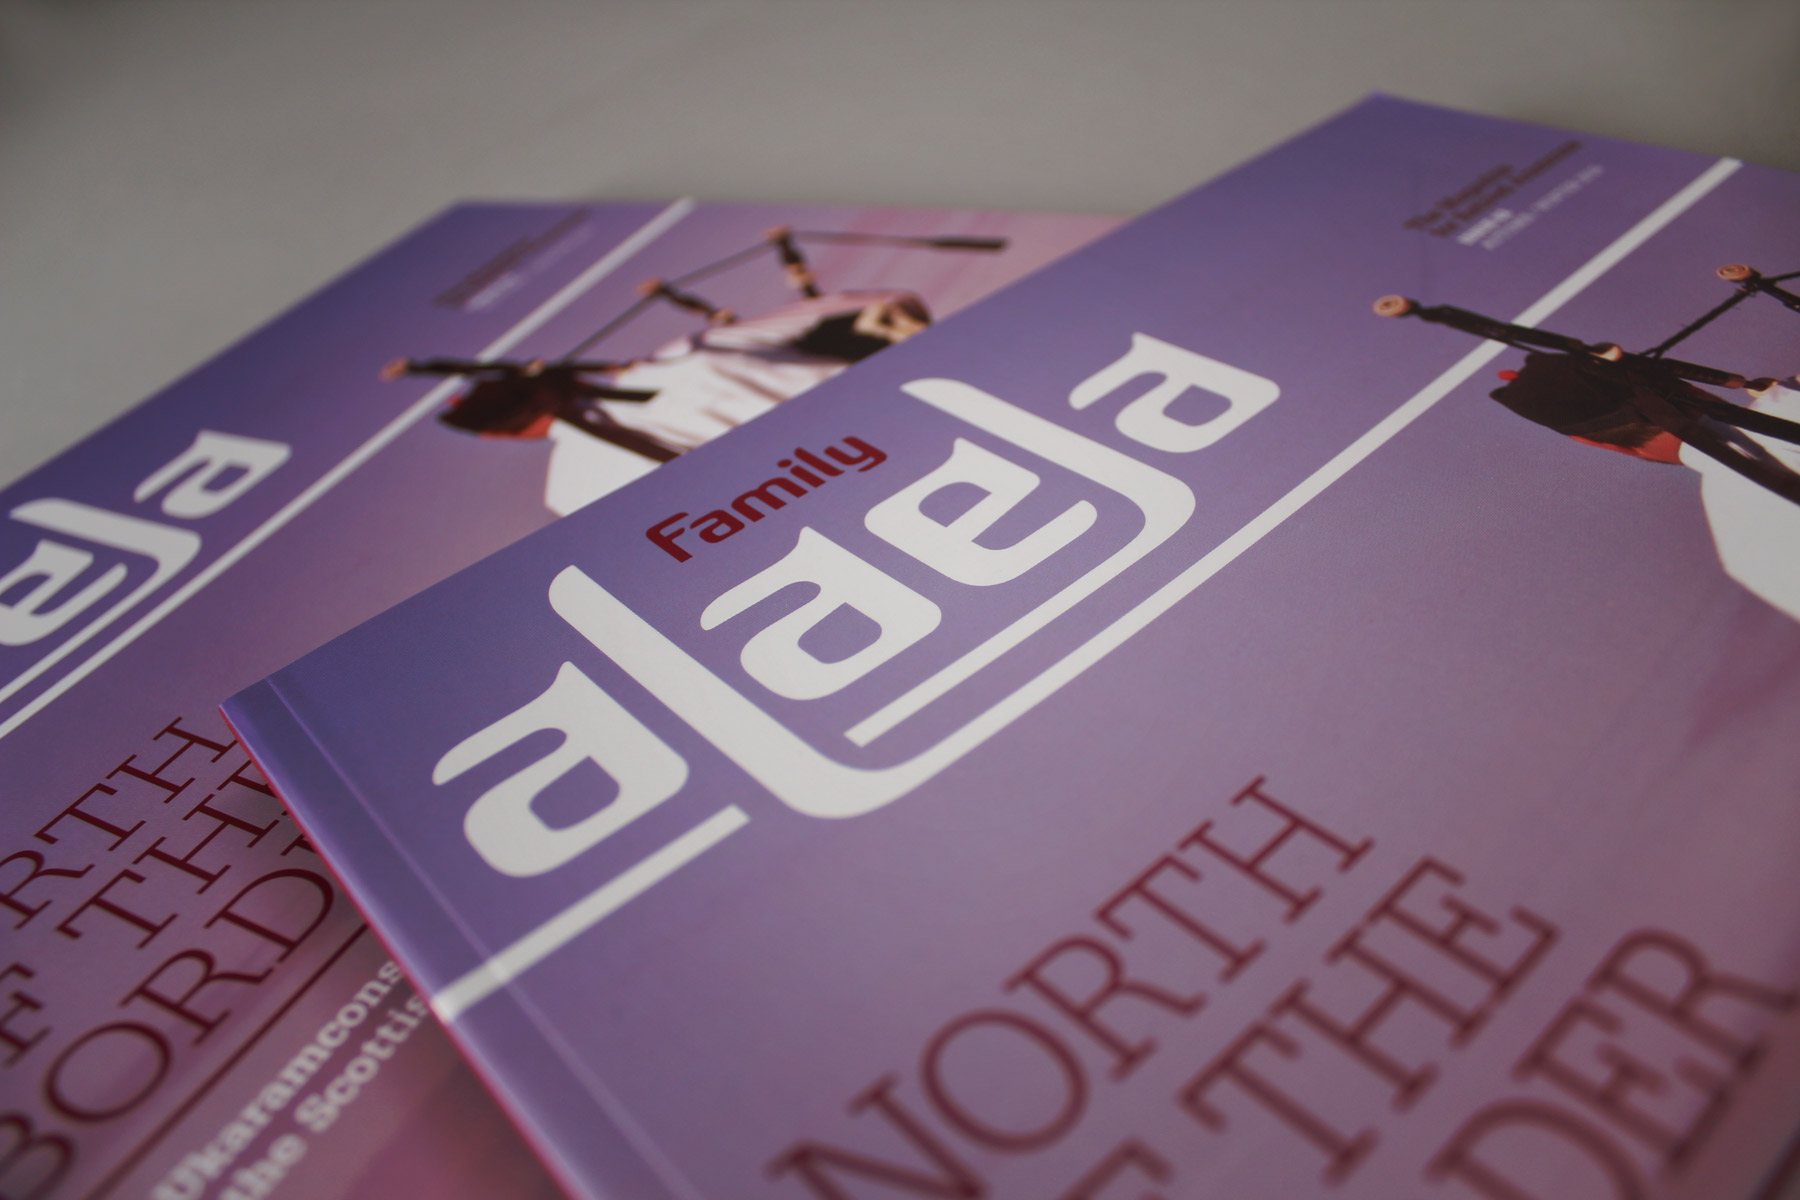 We have created a number of publications for AOC across a wide audience. Alaela is aimed at retirees and AOC alumni.